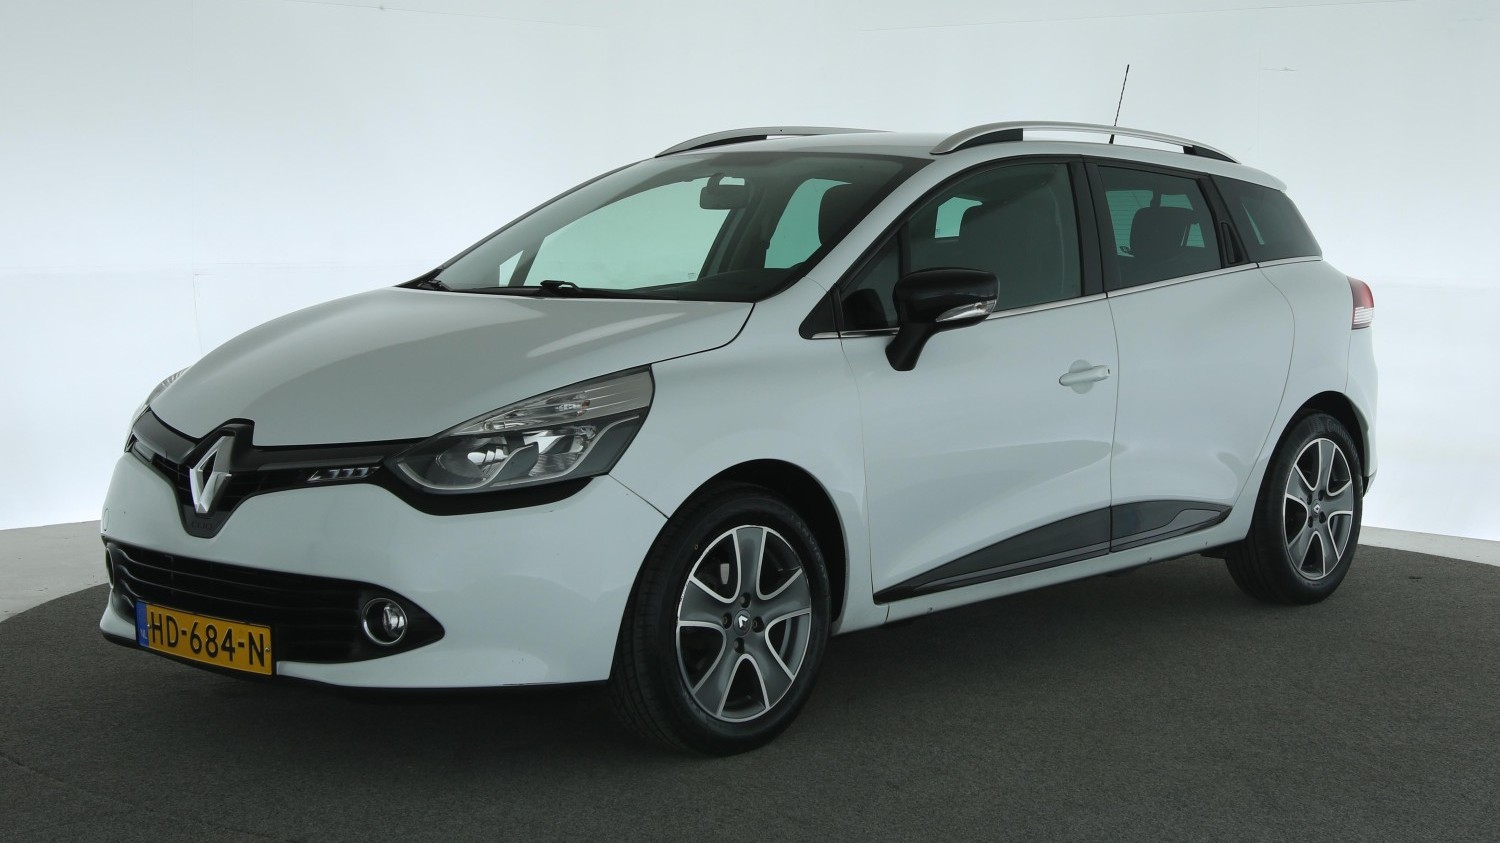 Renault Clio Station 2015 HD-684-N 1